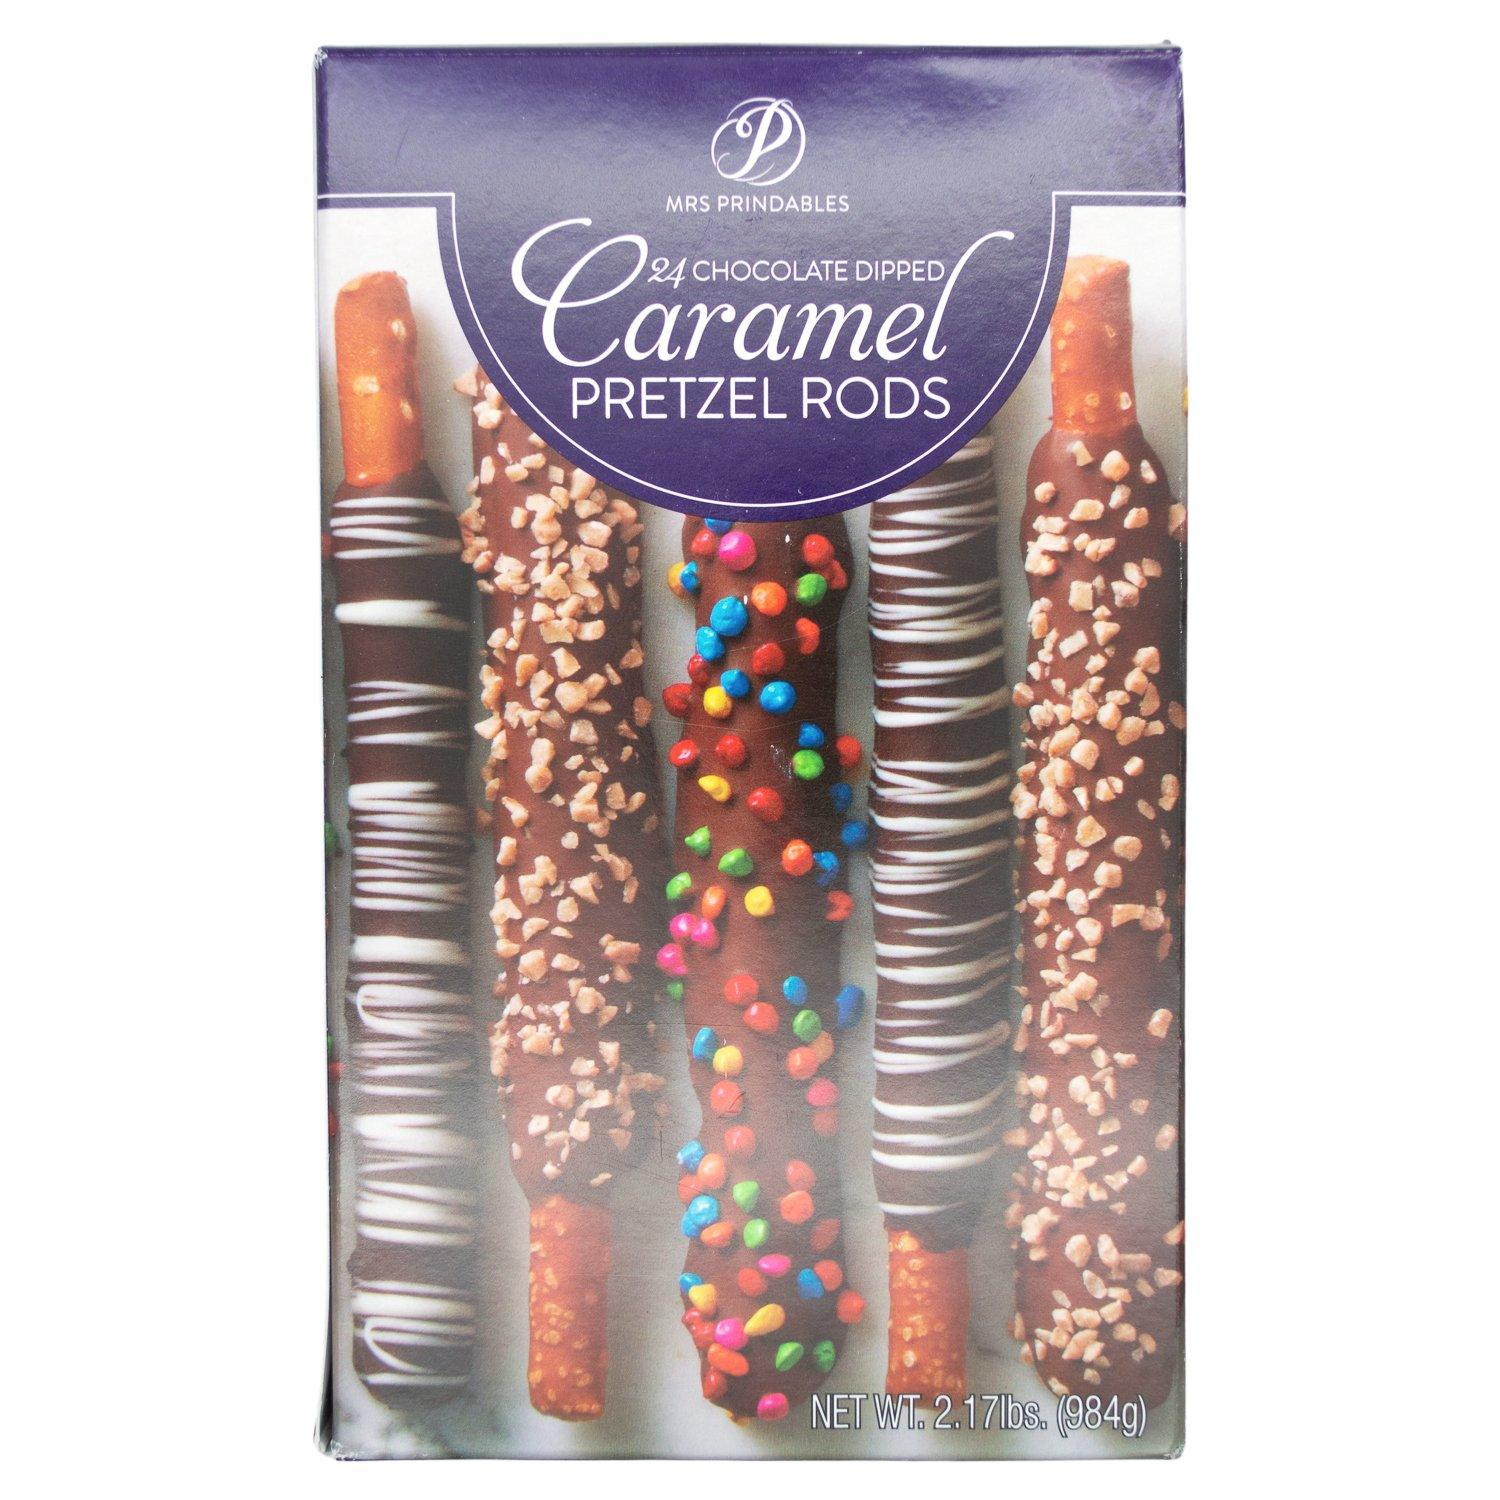 Mrs Prindables Chocolate and Caramel Dipped Pretzels Rods Meltable Mrs Prindables Variety 24 Rods-2.17 Pound